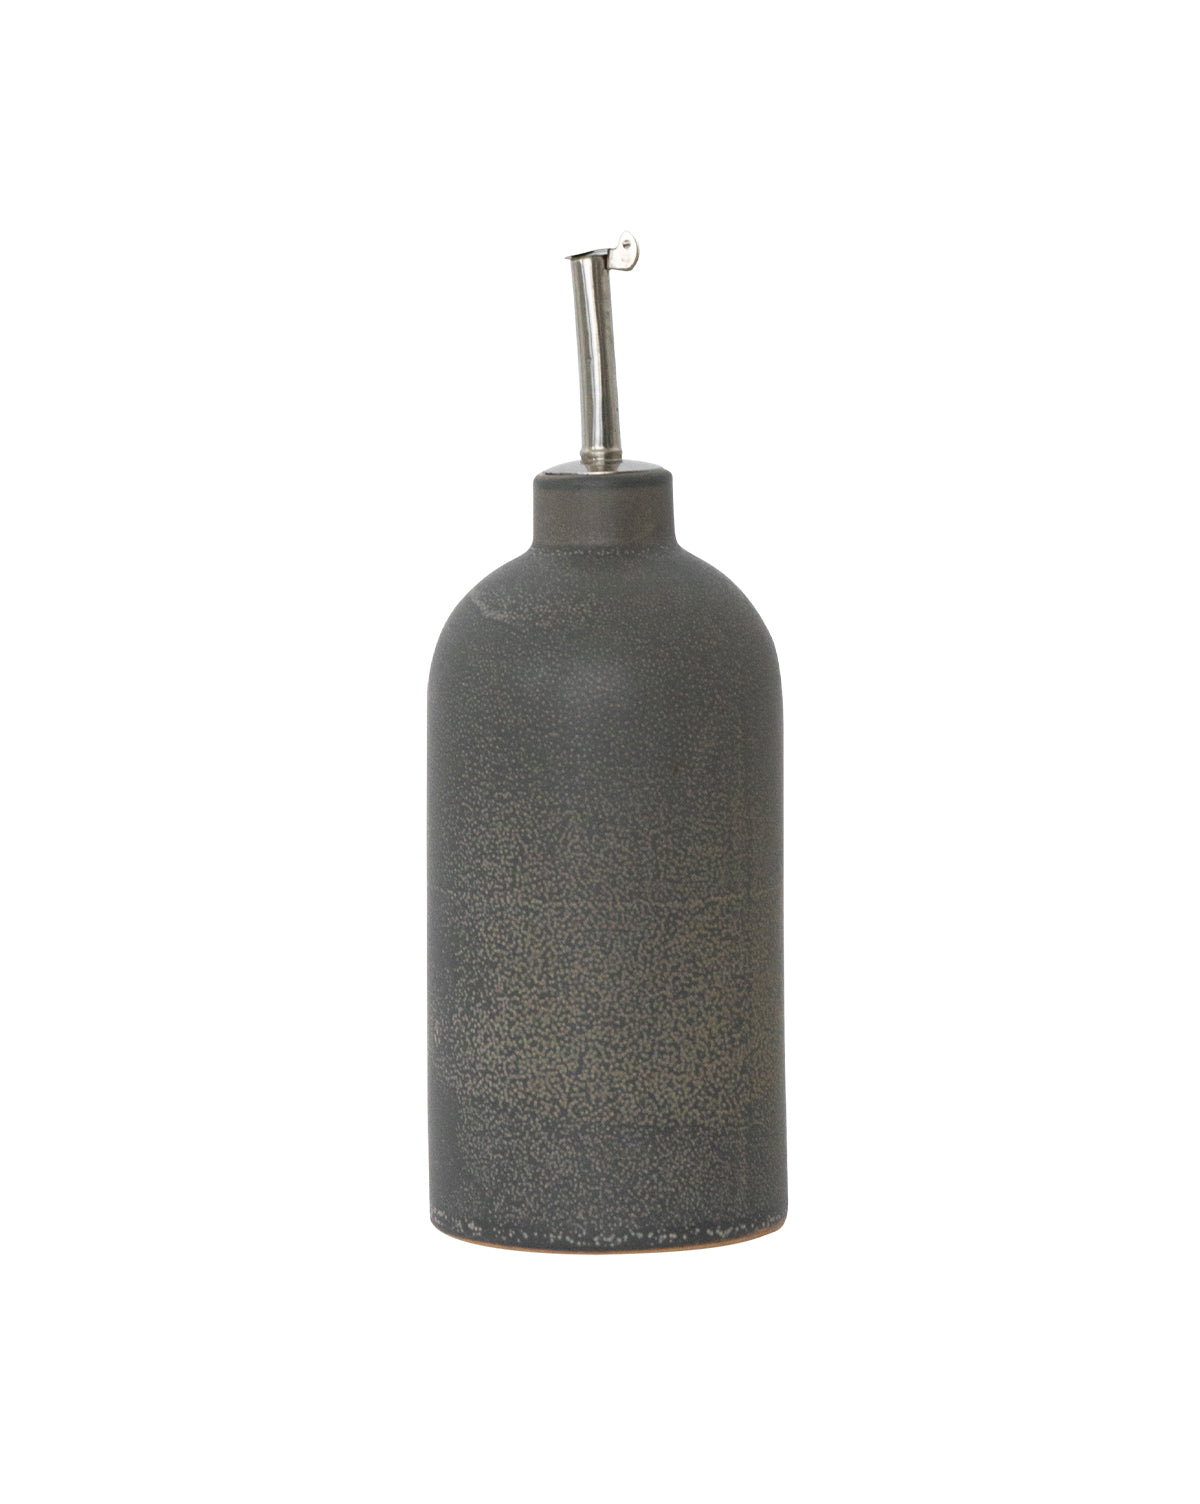 Speckled Stone Oil Bottle